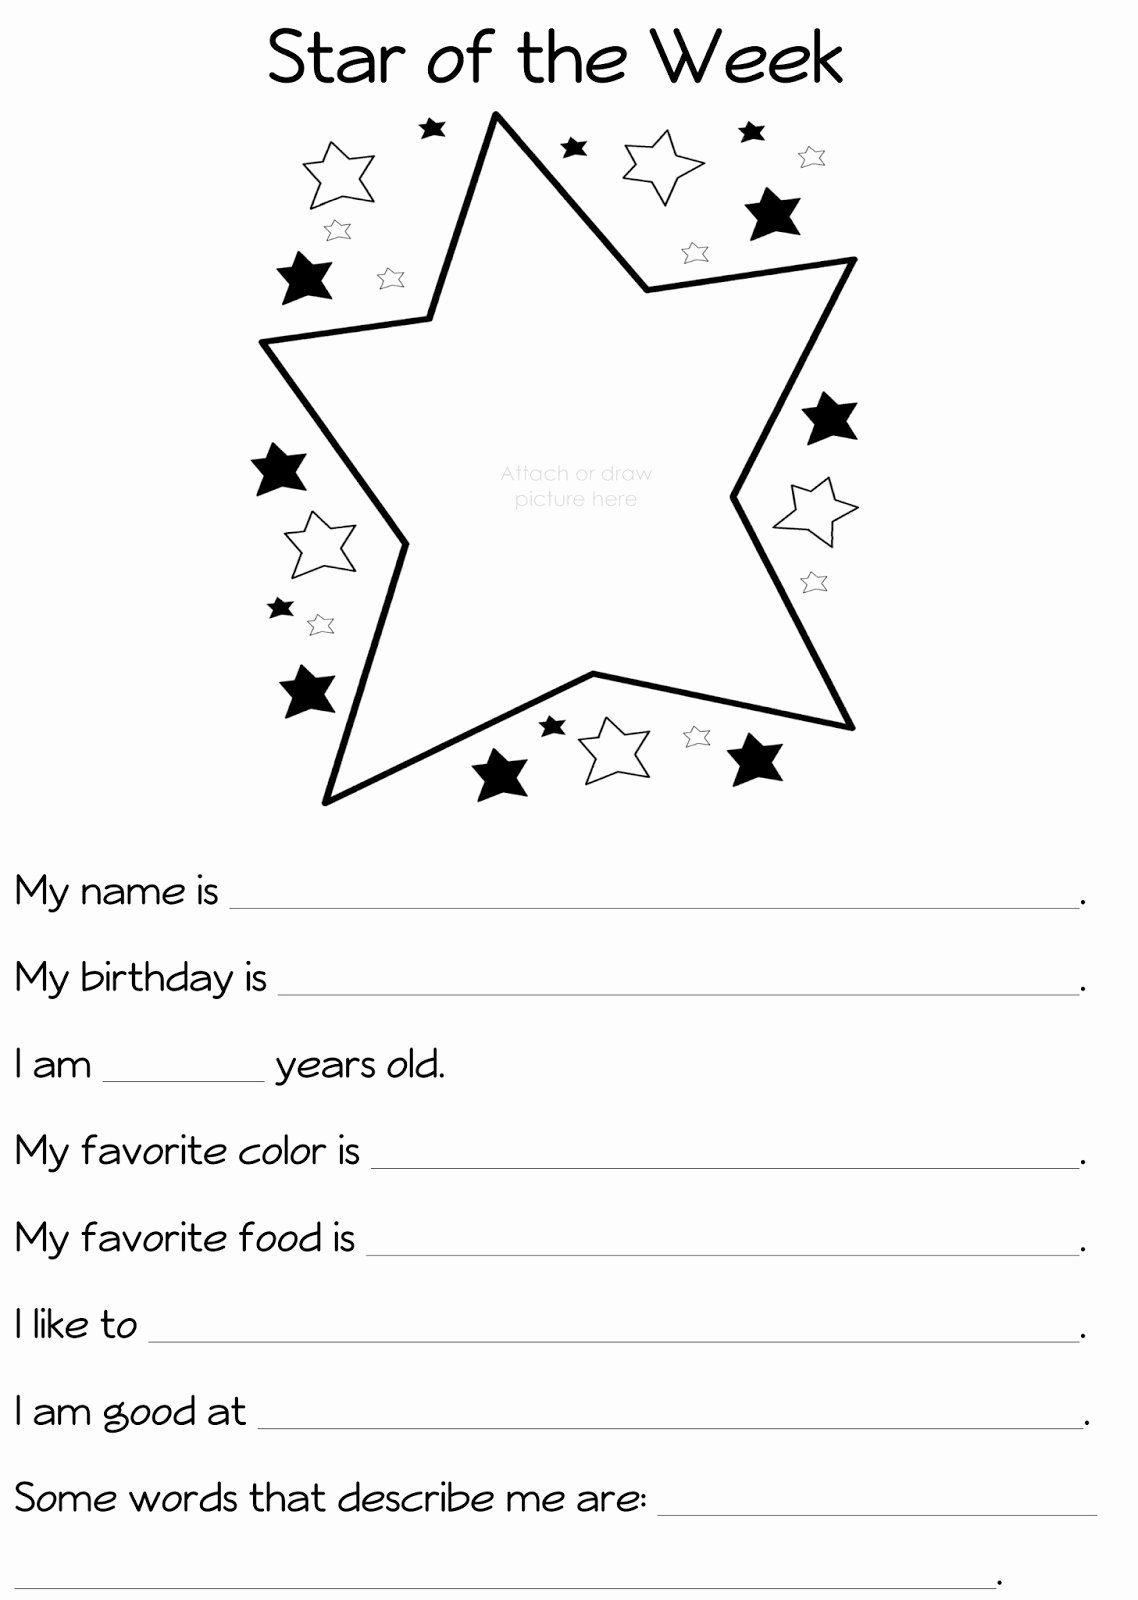 Star Of the Week Printables Inspirational River Bliss Star Of the Week Celebrating What S Special